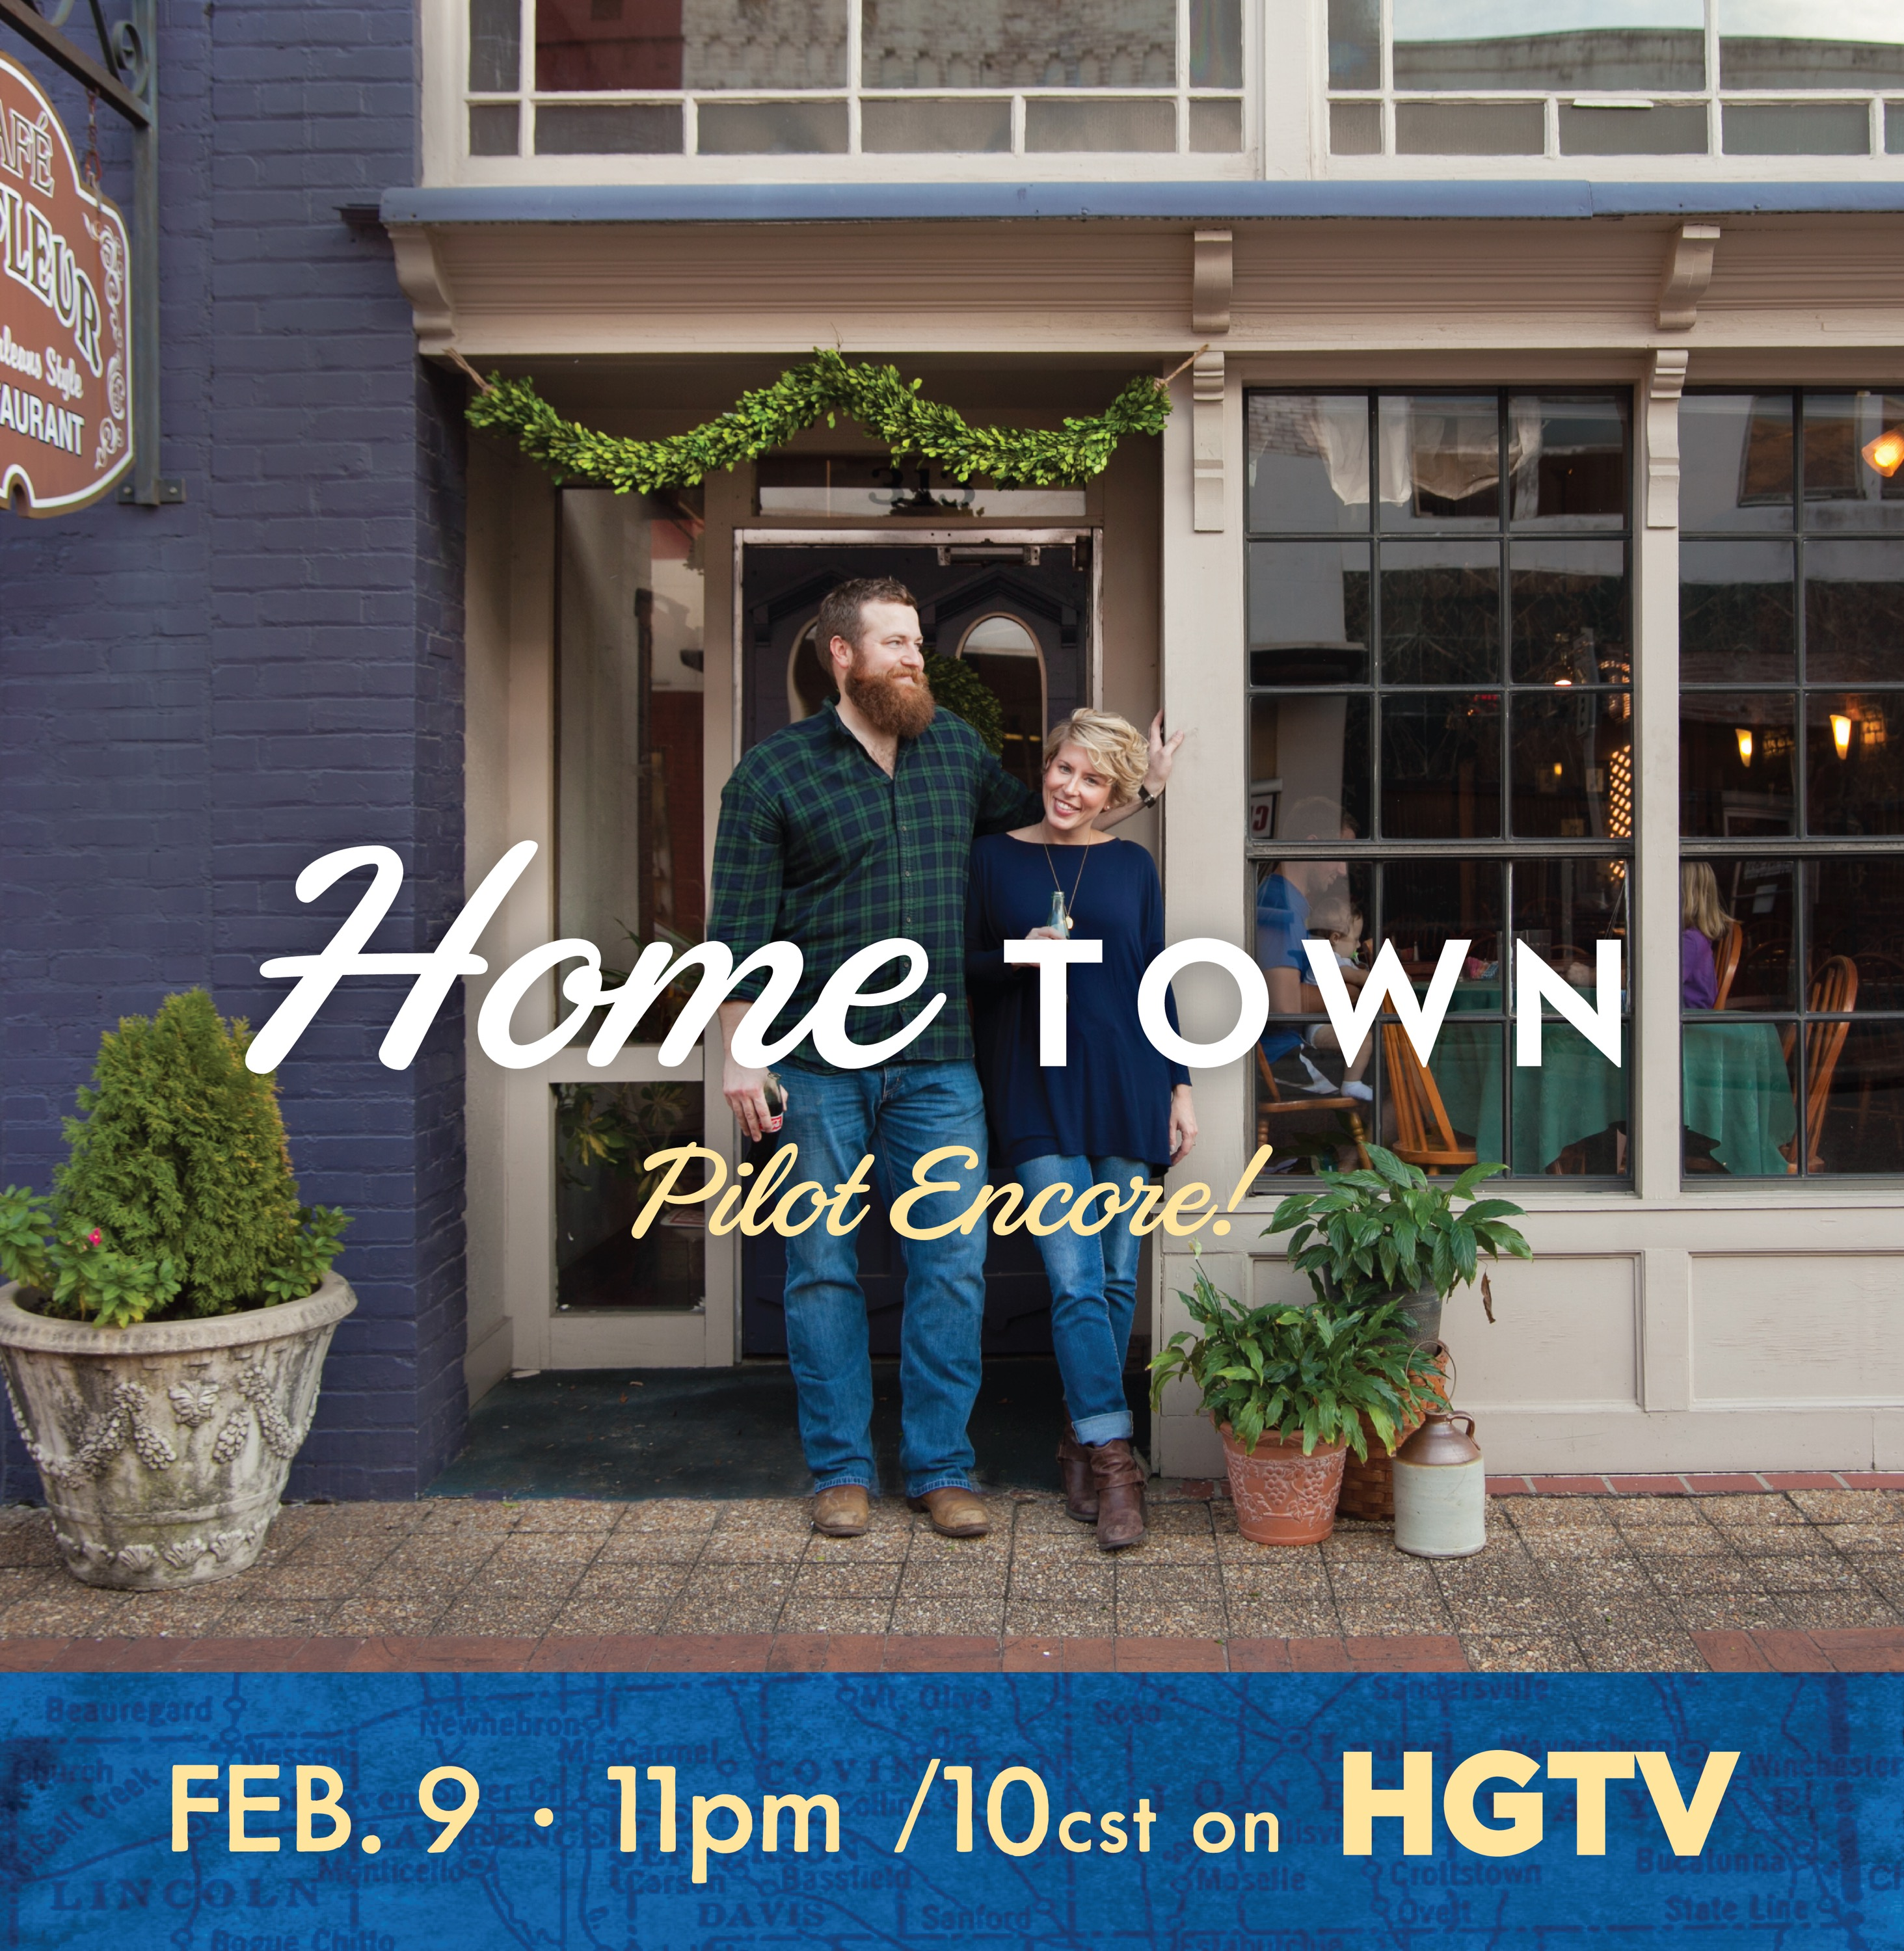 Tremendous Our Friend Brittney Who Just Happenedupon It While Scrolling Tv She Was To Hgtv Home Town Encore Supper Laurel Mercantile We Never Would Have Known If Not curbed Home Town Hgtv